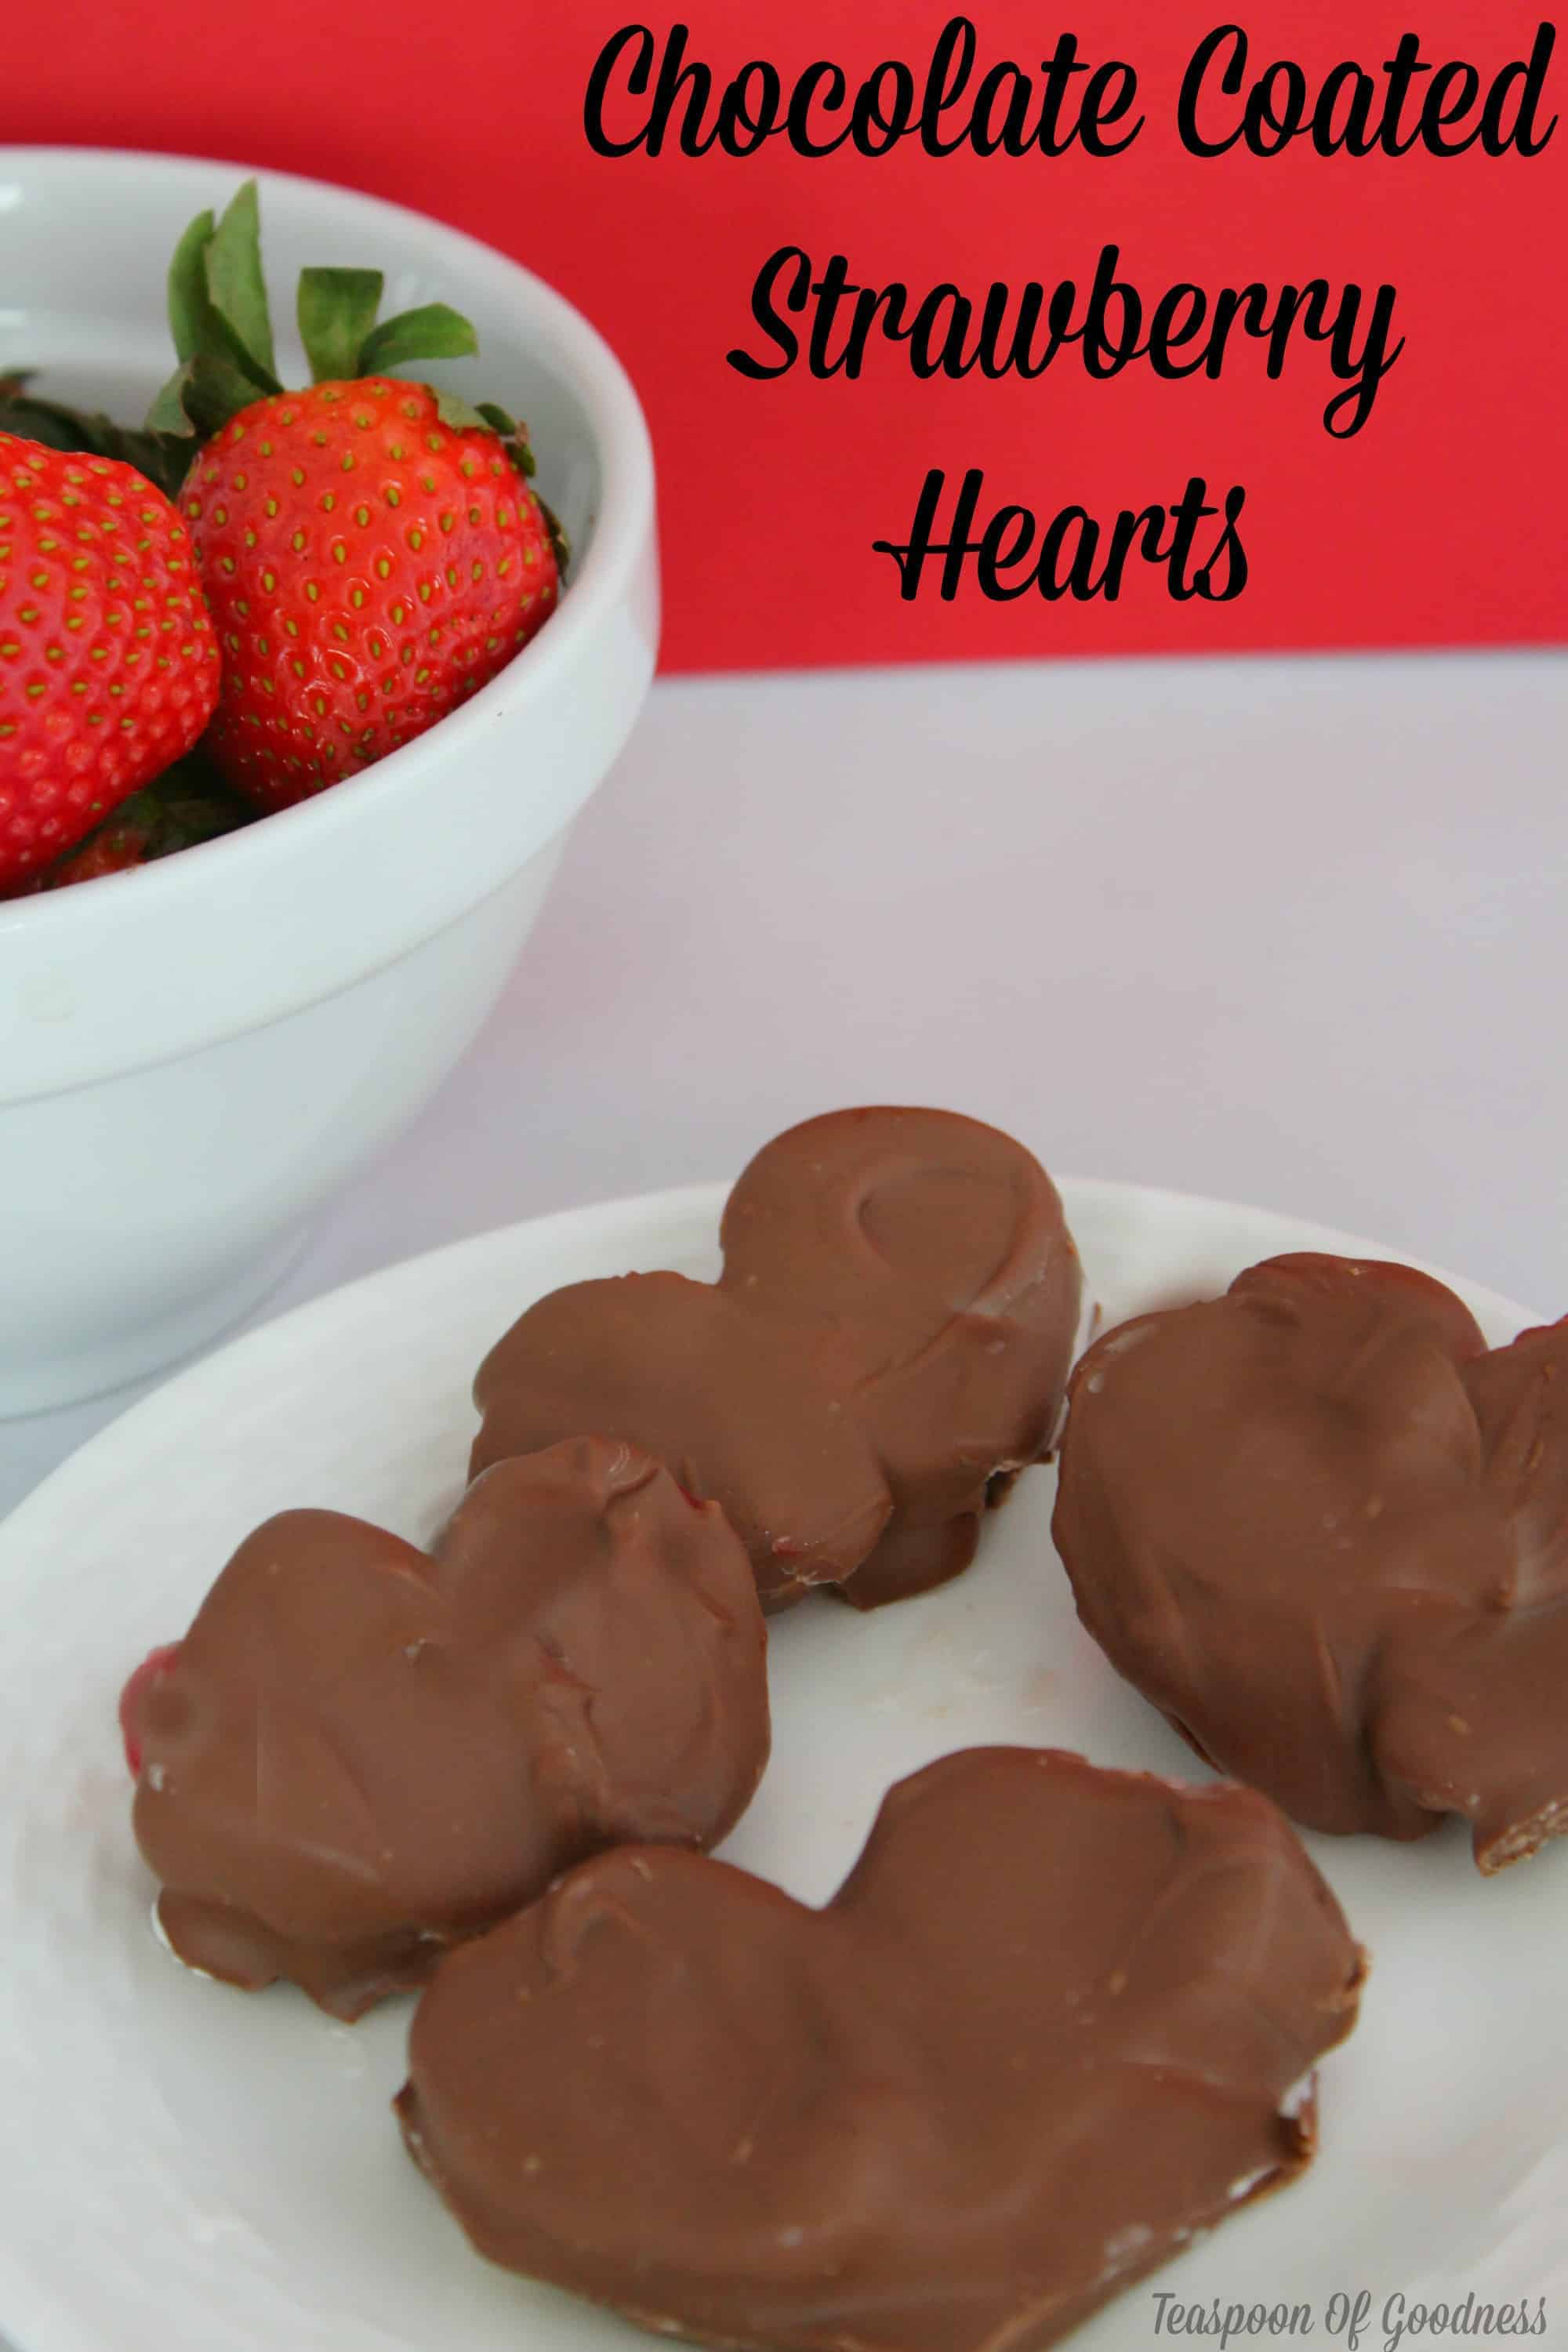 Chocolate Coated Strawberry Hearts